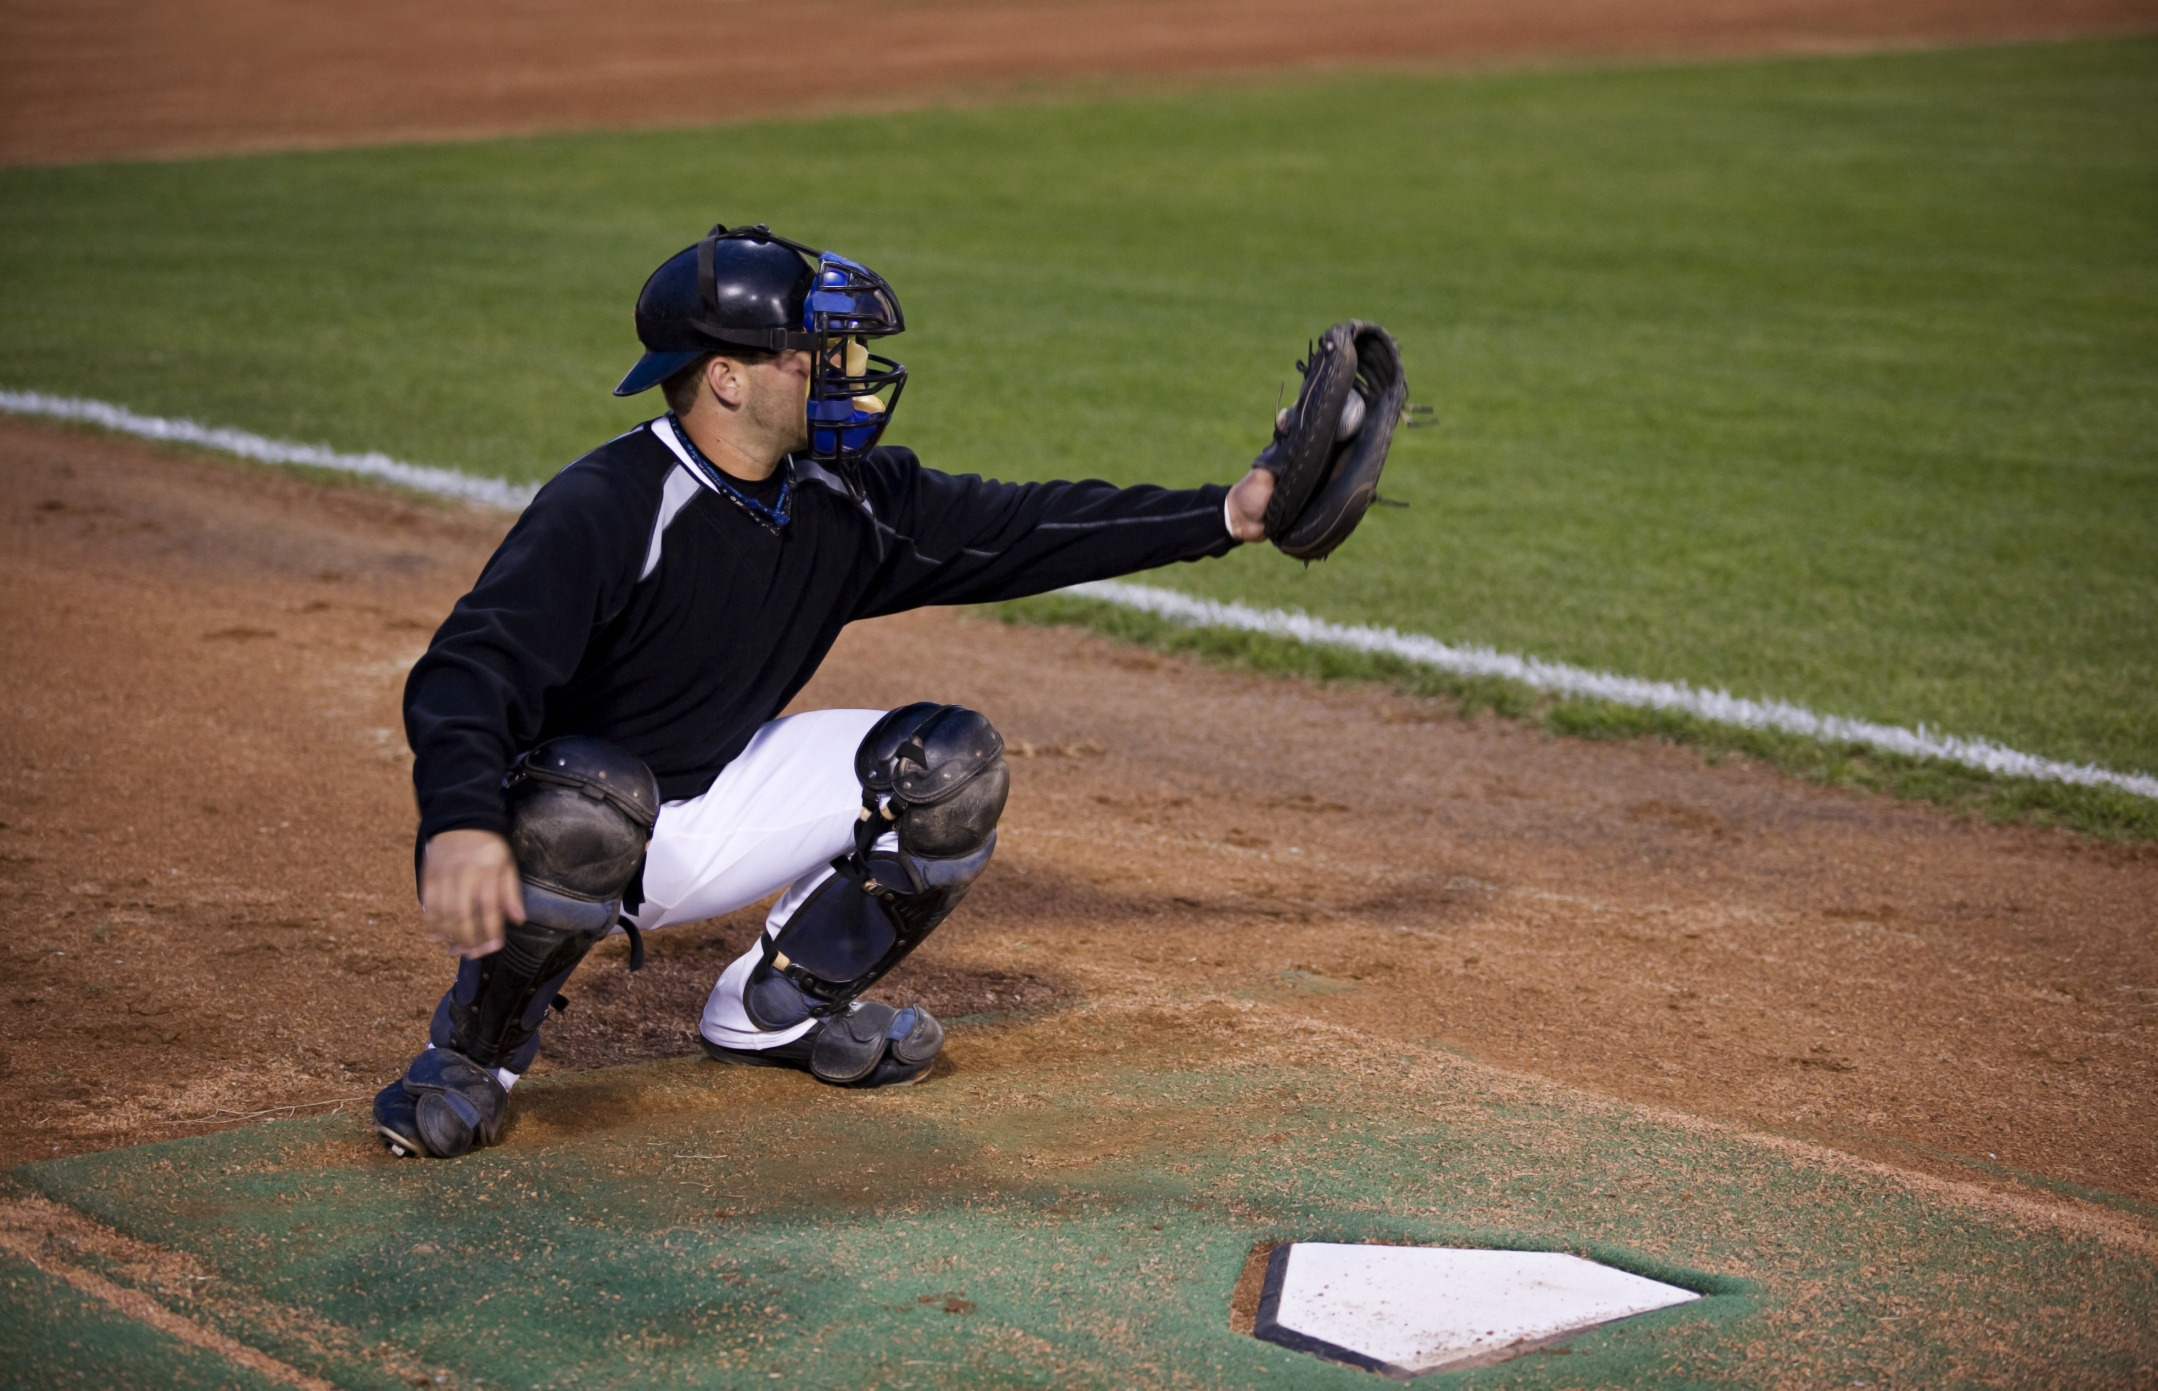 How to Do PFP Drills in Baseball